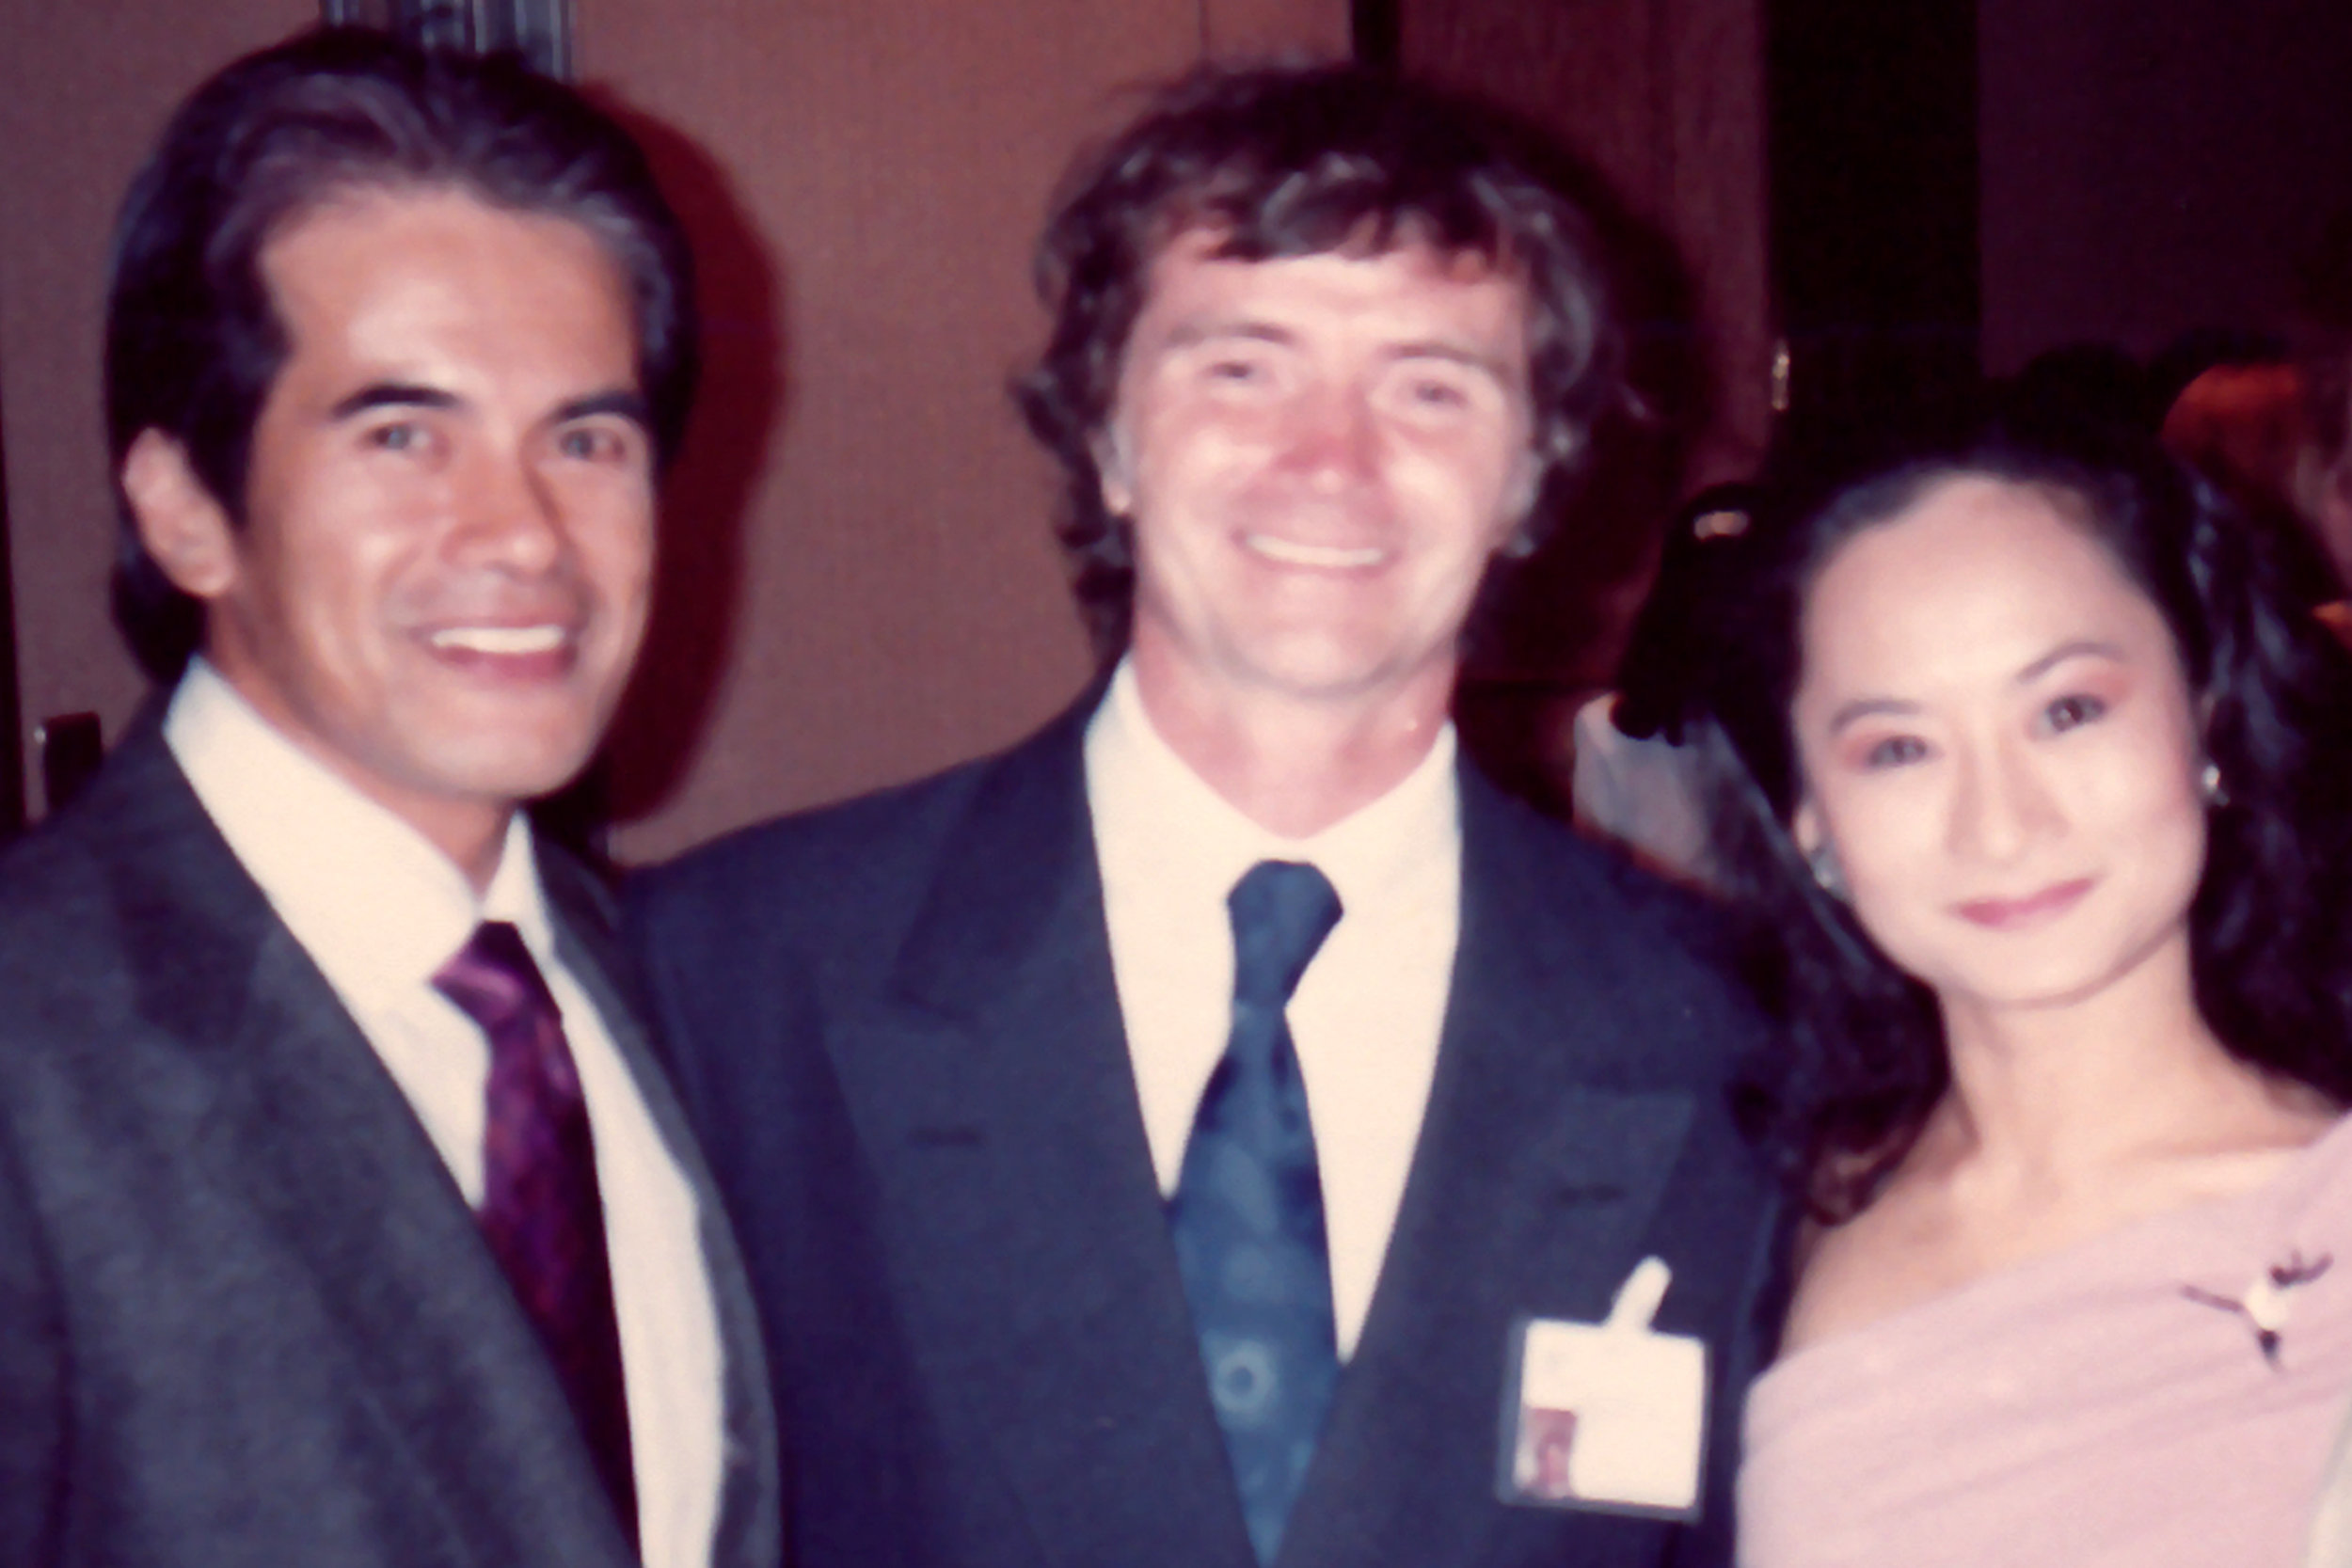 Apart from taking part in the competition itself, delegates also attend socials hosted by organizers. For Lisa, being in Jackson also meant having a reunion with Sergei Vikulov (seen here between her and Nonoy Froilan), who became like a second father to her in Russia. His wife, Tatiana Udalenkova, was Lisa's mentor at the Leningrad Choreographic Institute. Sergei, who is a People's Artist of Russia, was among the esteemed personalities that conducted classes for students and teachers as part of the International Dance School in the USA IBC.